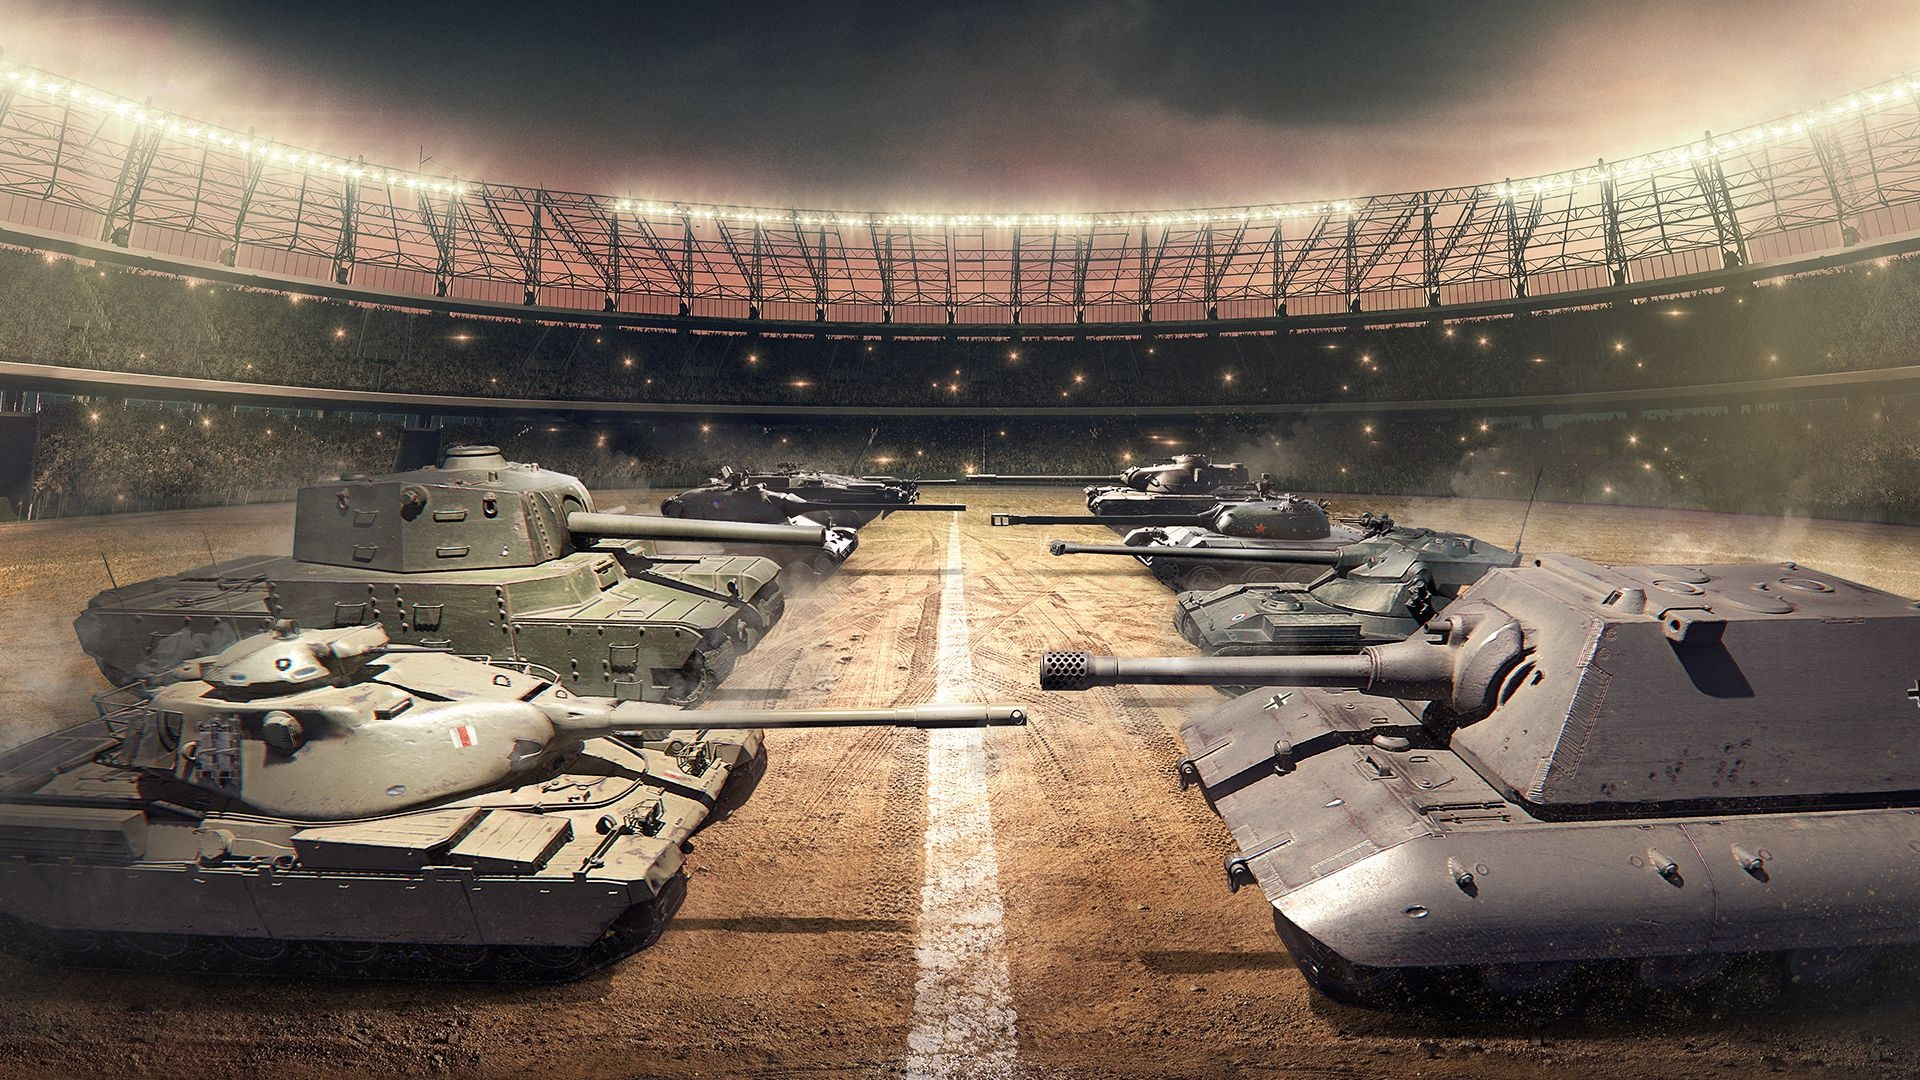 Get Lucky with World of Tanks Console for March Madness and